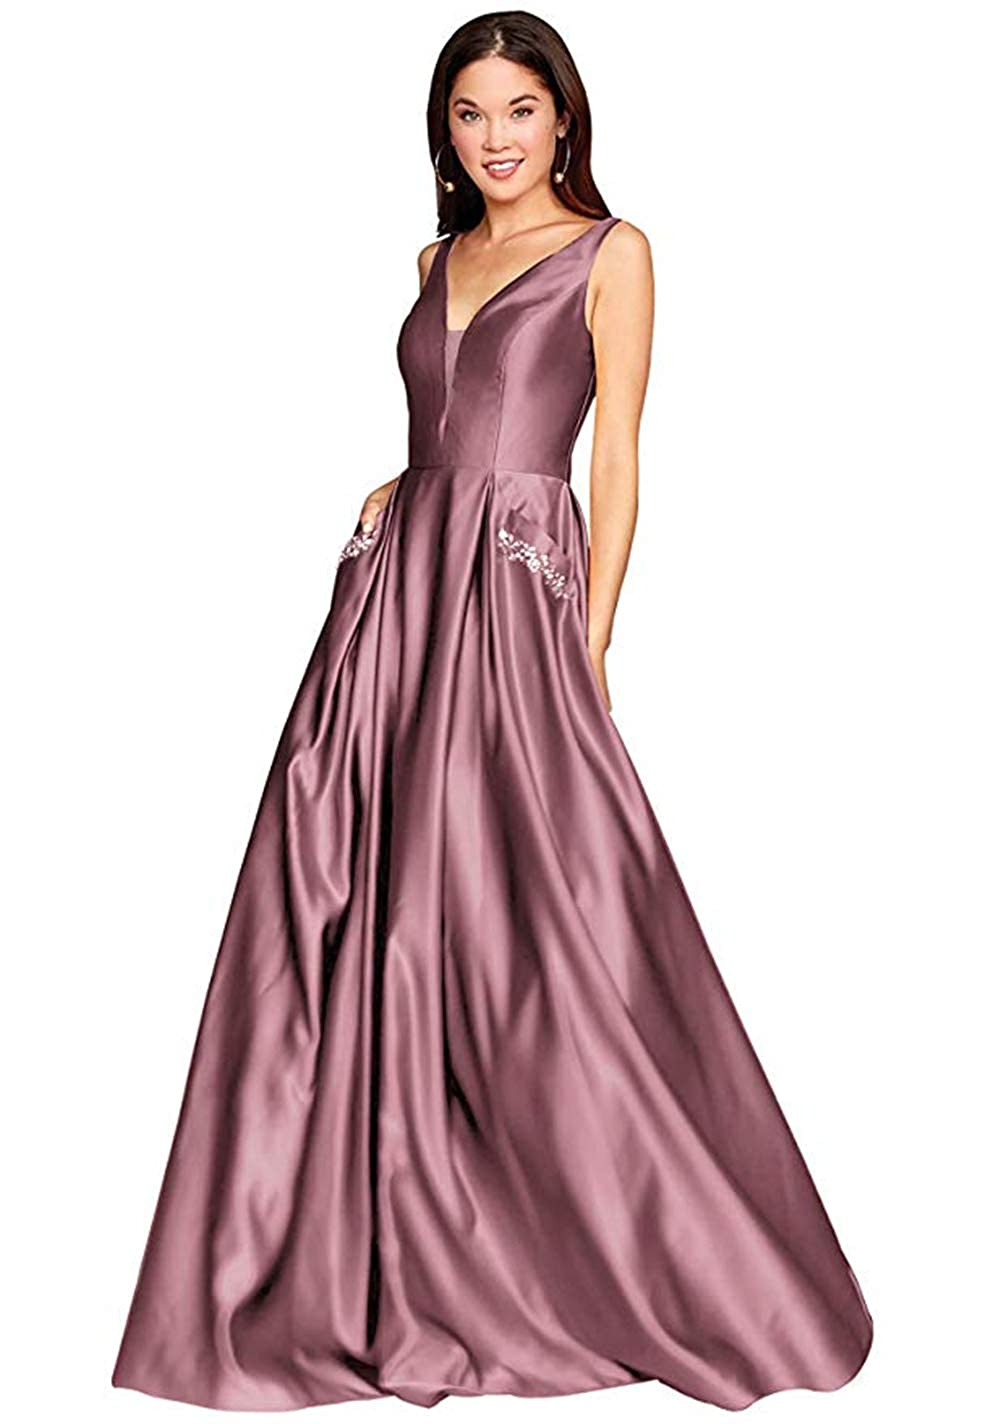 01dustypink PROMNOVAS Women's V Neck Backless Beaded Satin Prom Dress Long Formal Evening Gown with Pockets